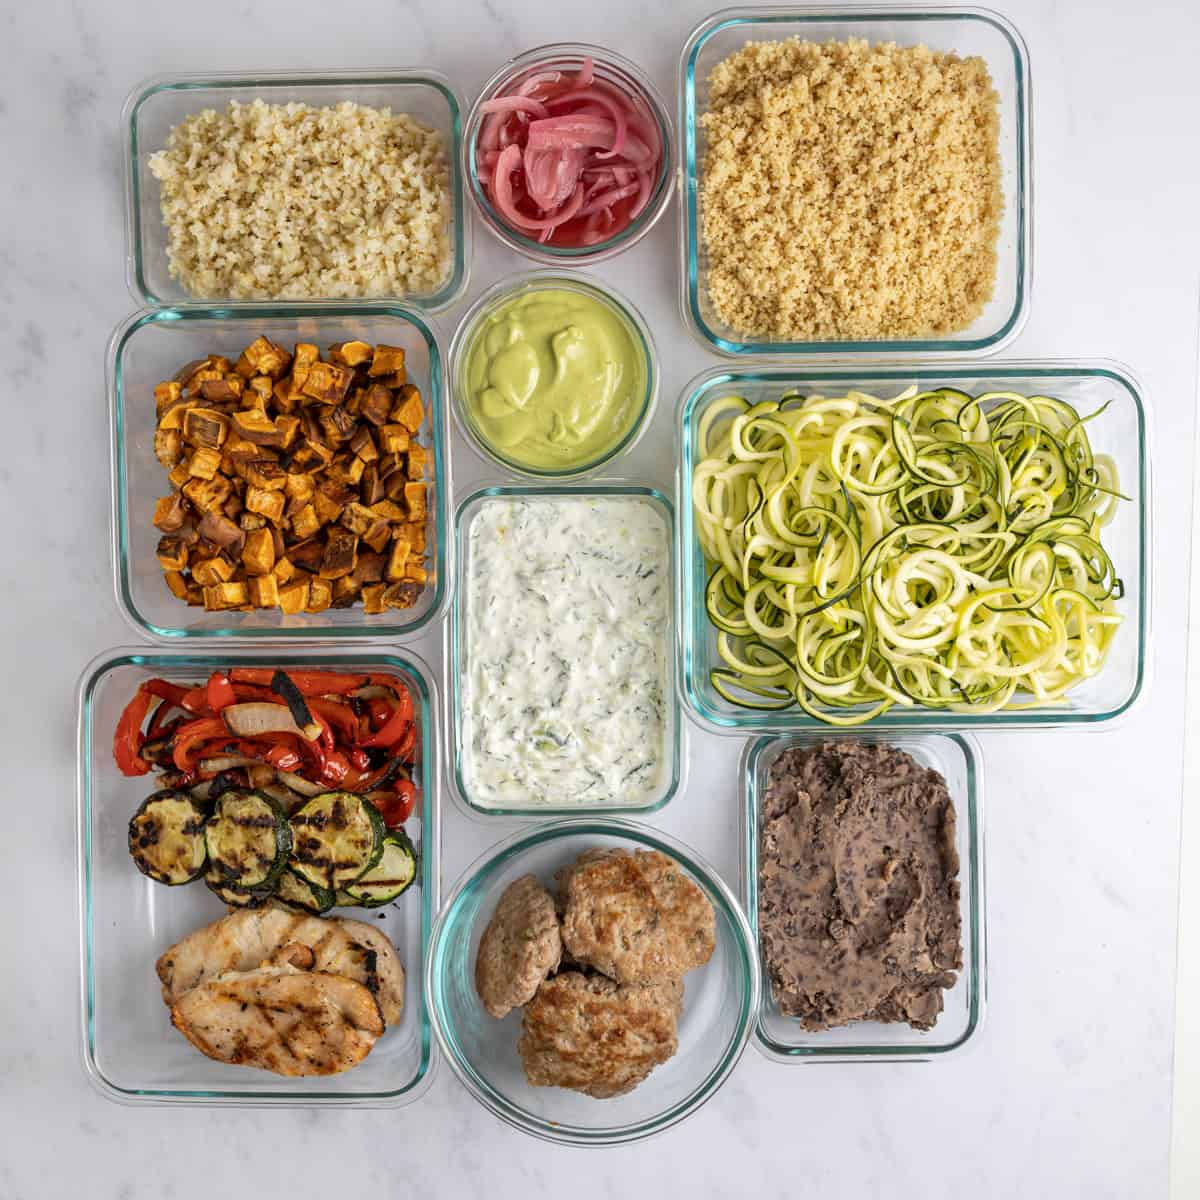 individually prepped ingredients in glass containers